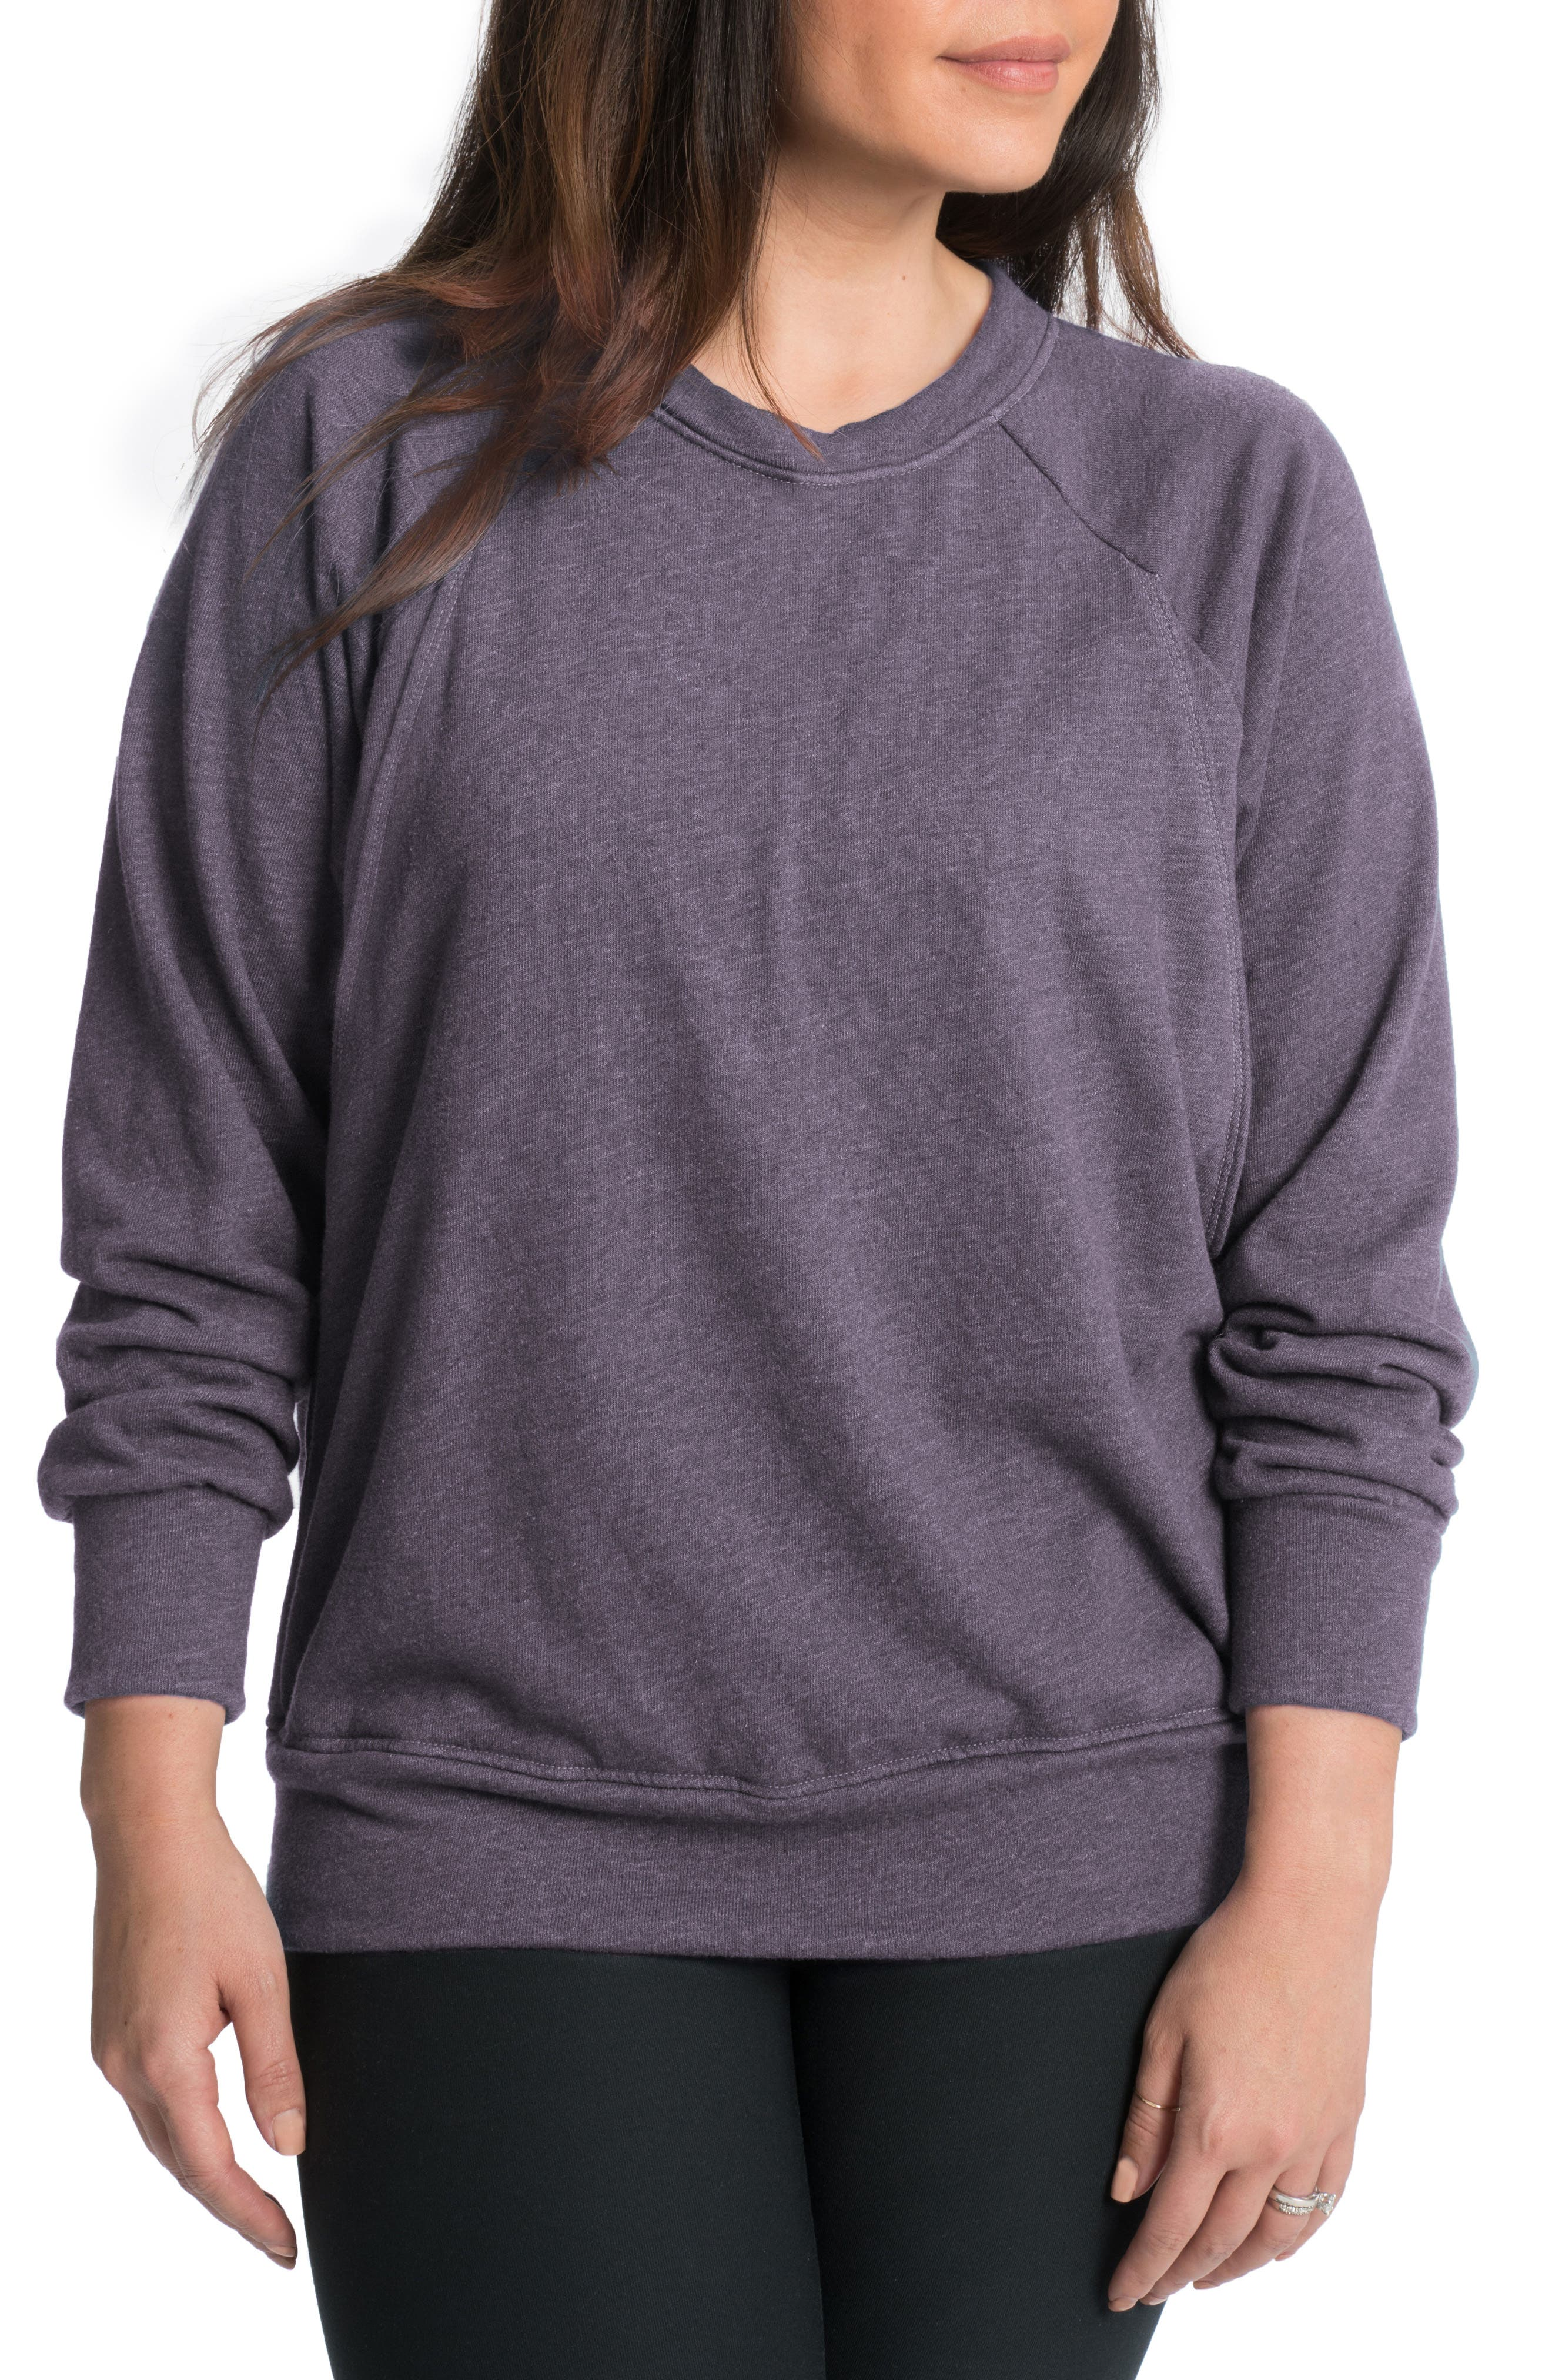 Bun Maternity Relaxed Daily Maternity/Nursing Sweatshirt